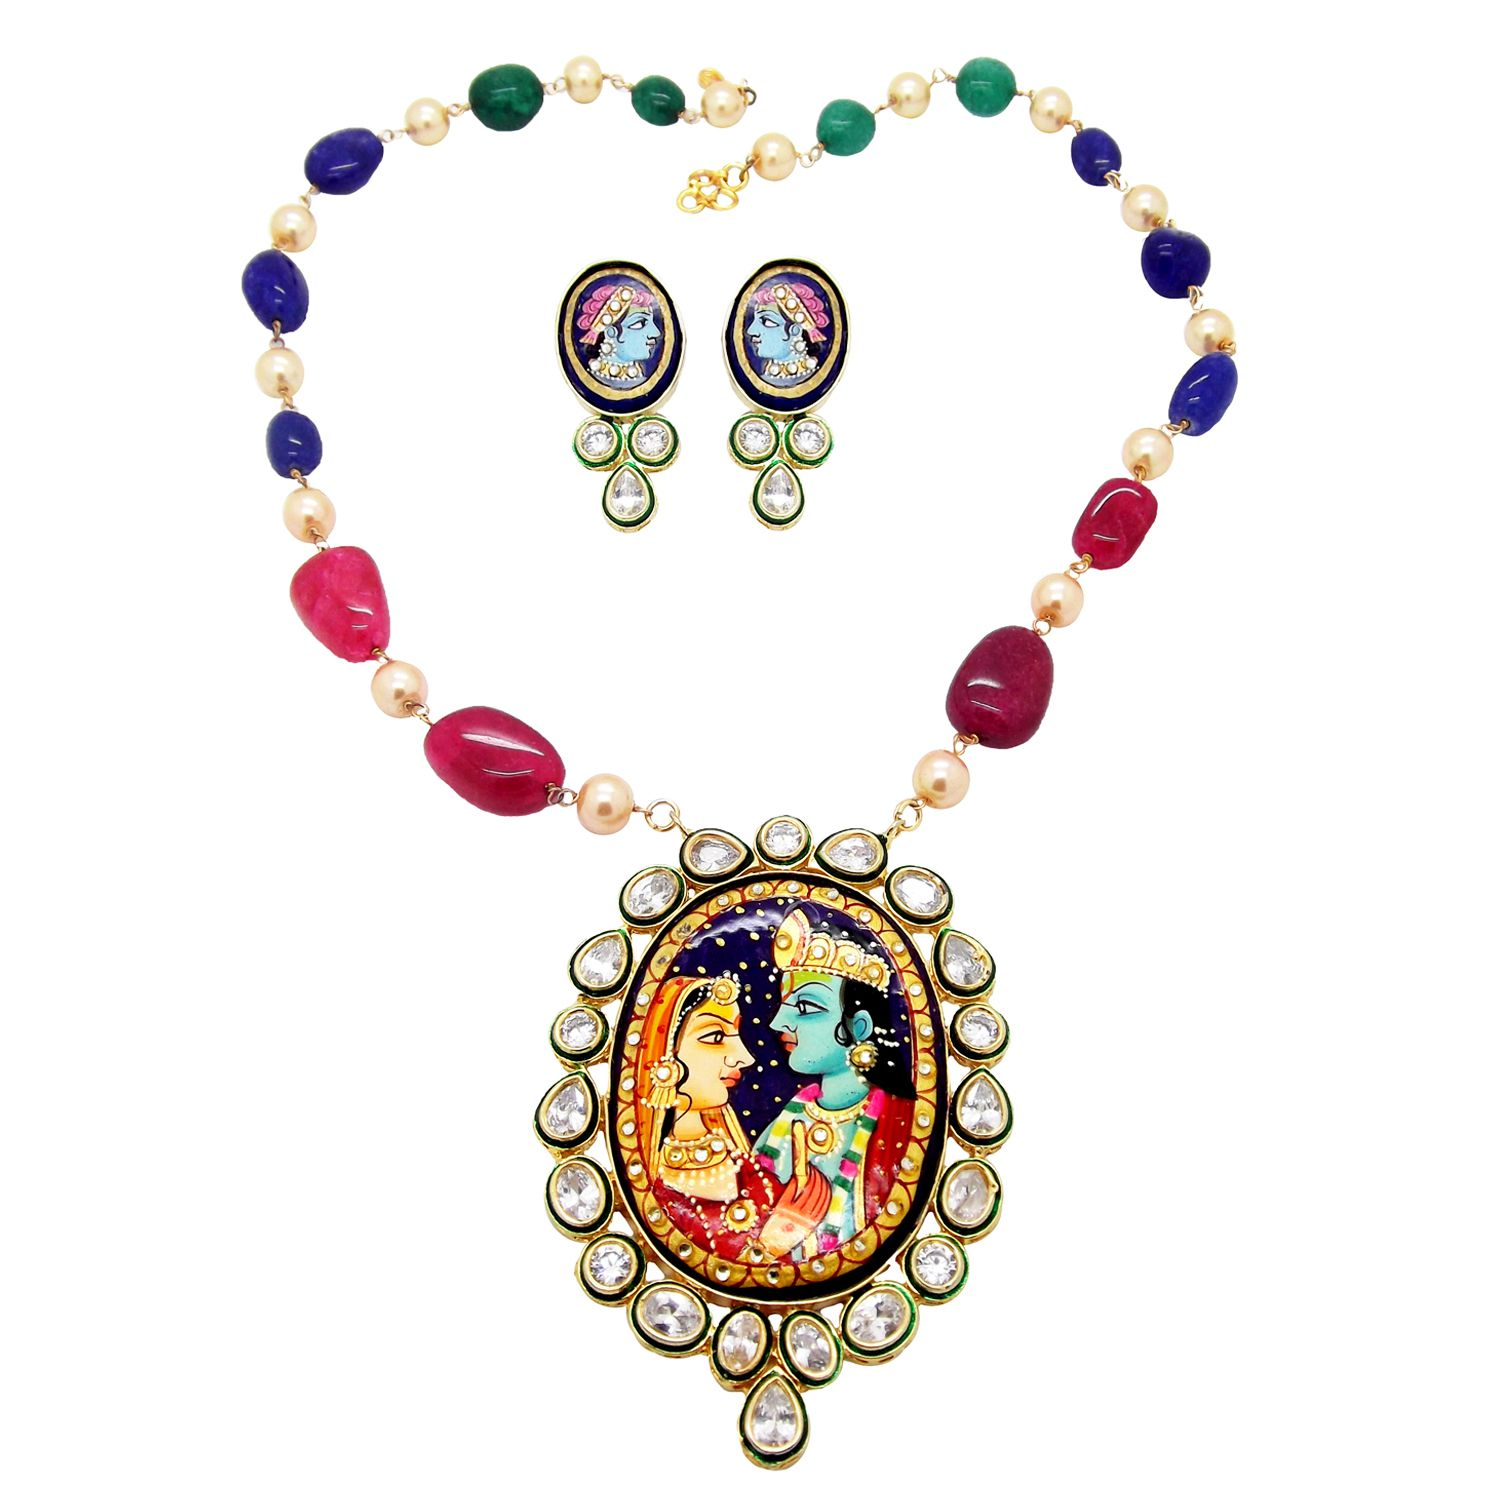 Biyu Radha Krishna Handpainted Multigem Kundan Ad Necklace Set